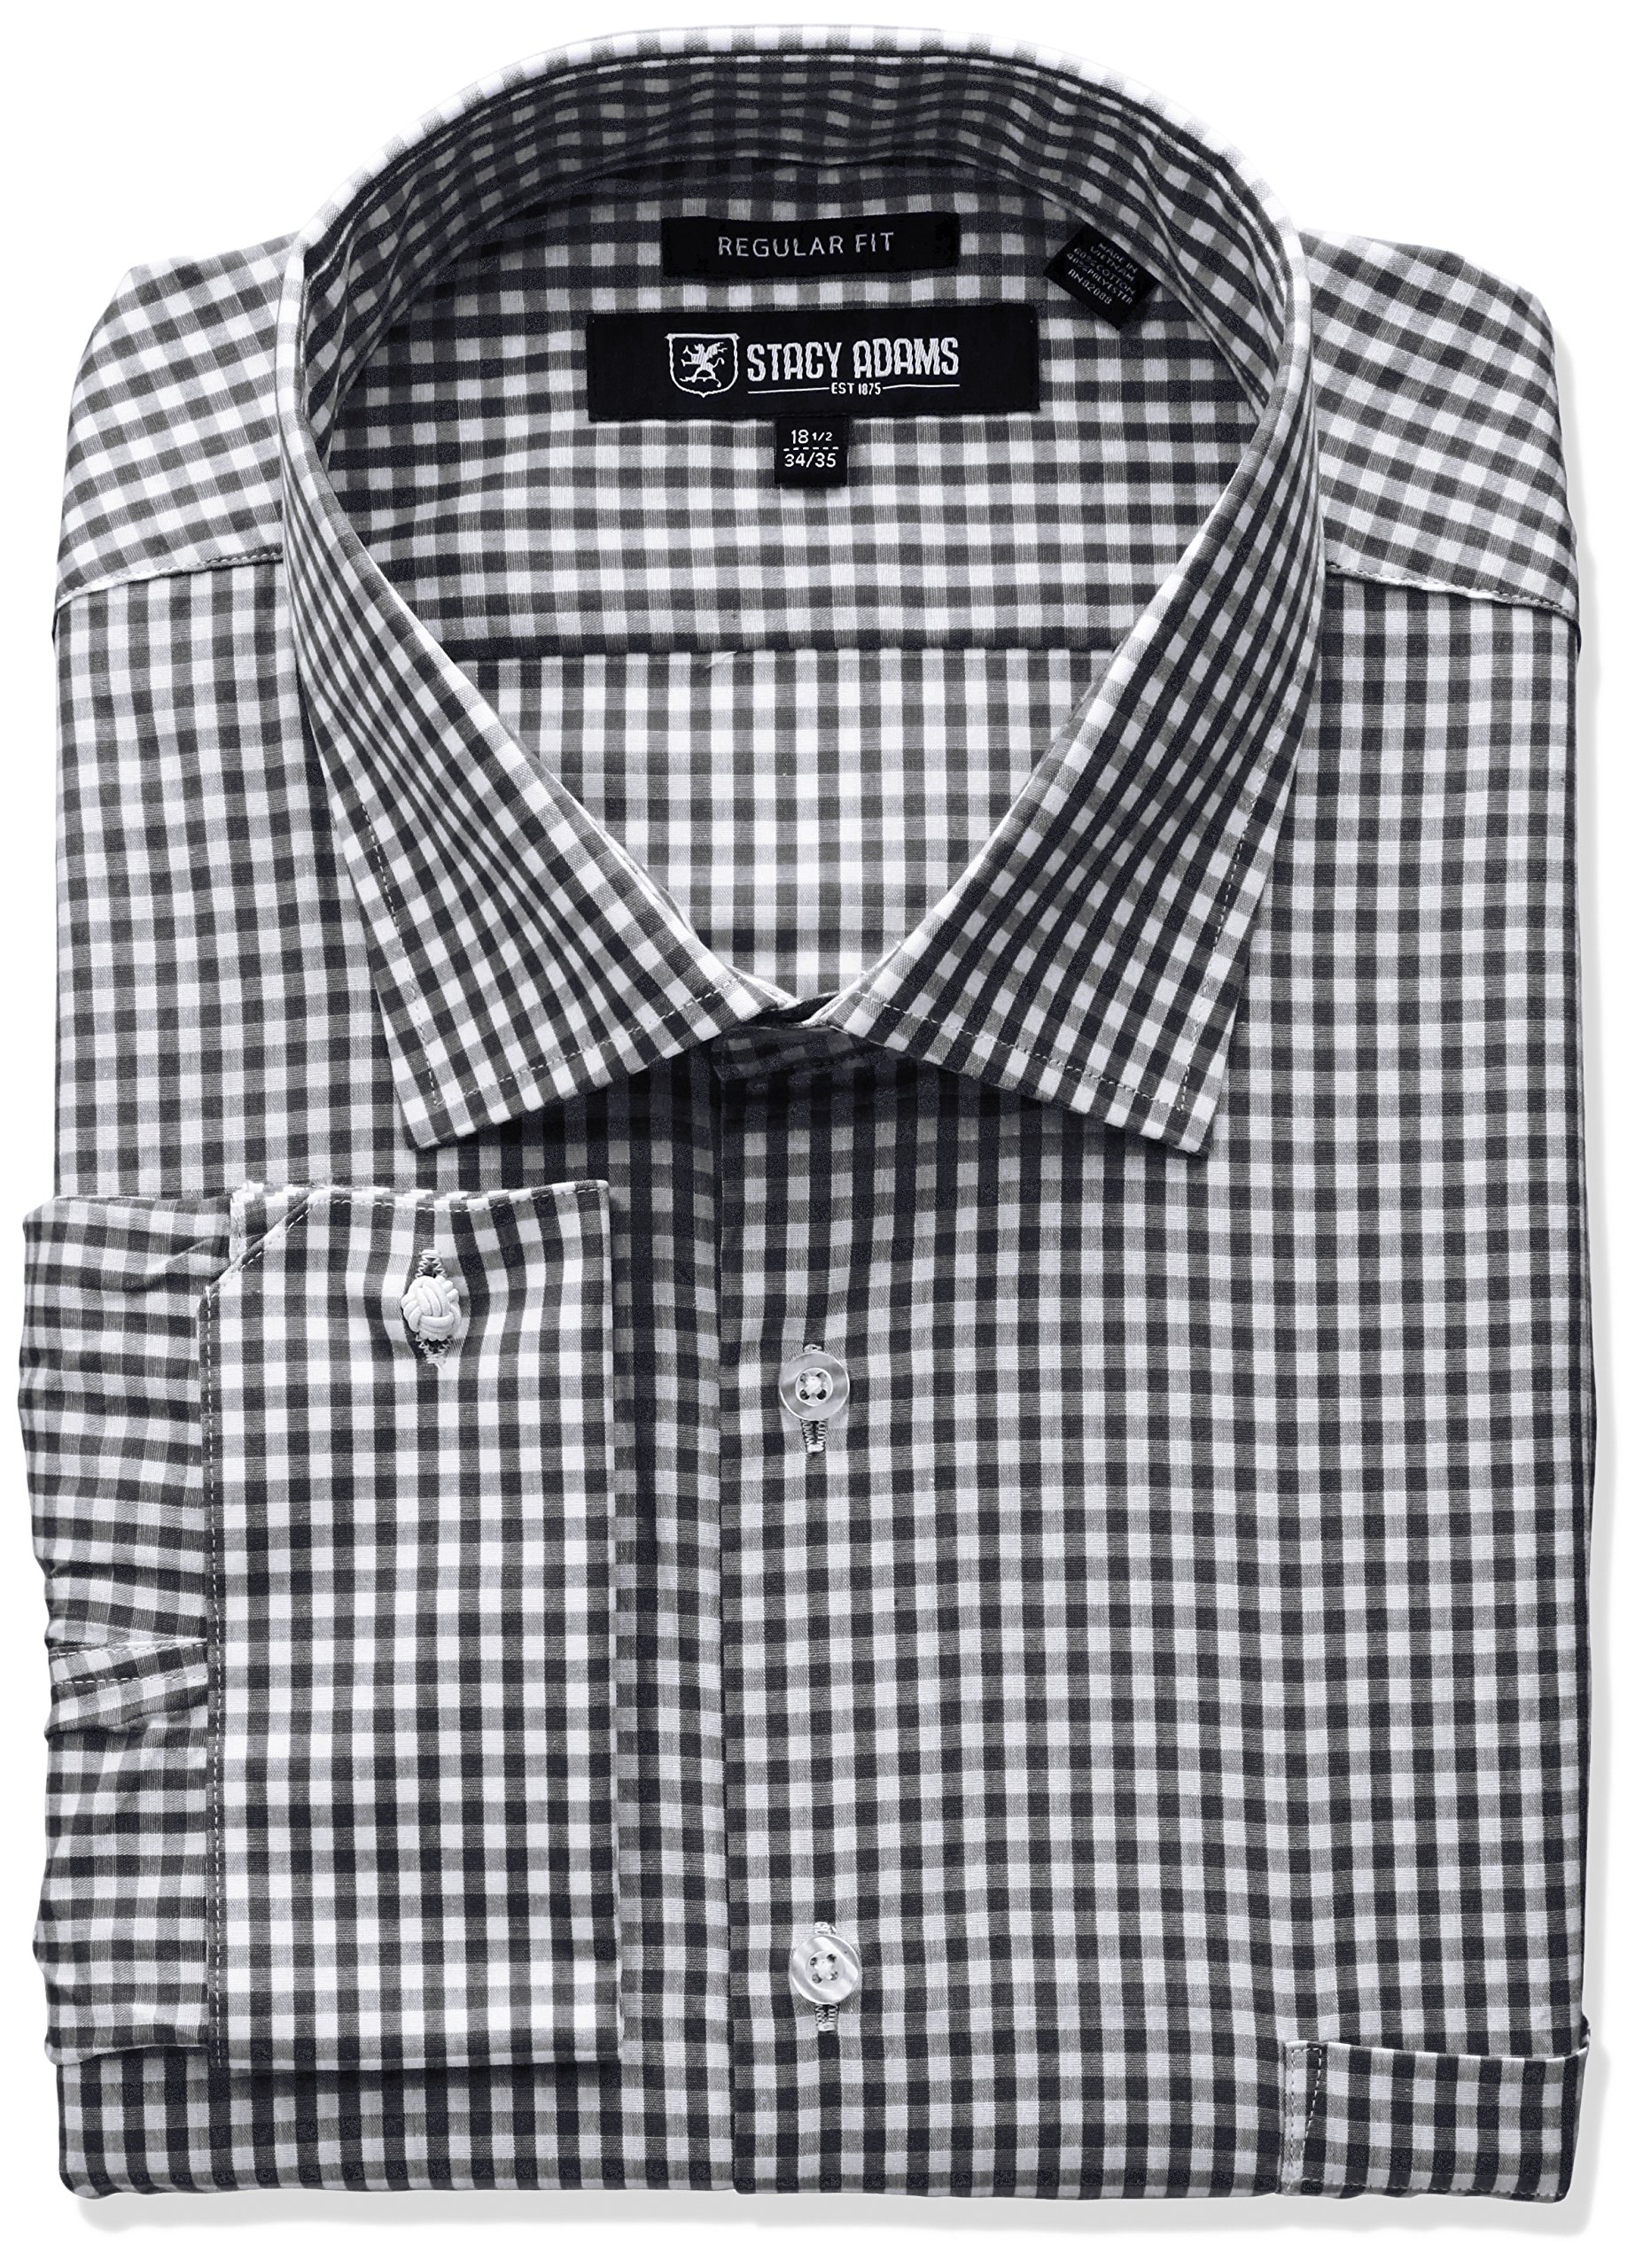 Stacy Adams Men's Big and Tall Gingham Check Dress Shirt, Black, 20'' Neck 38''-39'' Sleeve